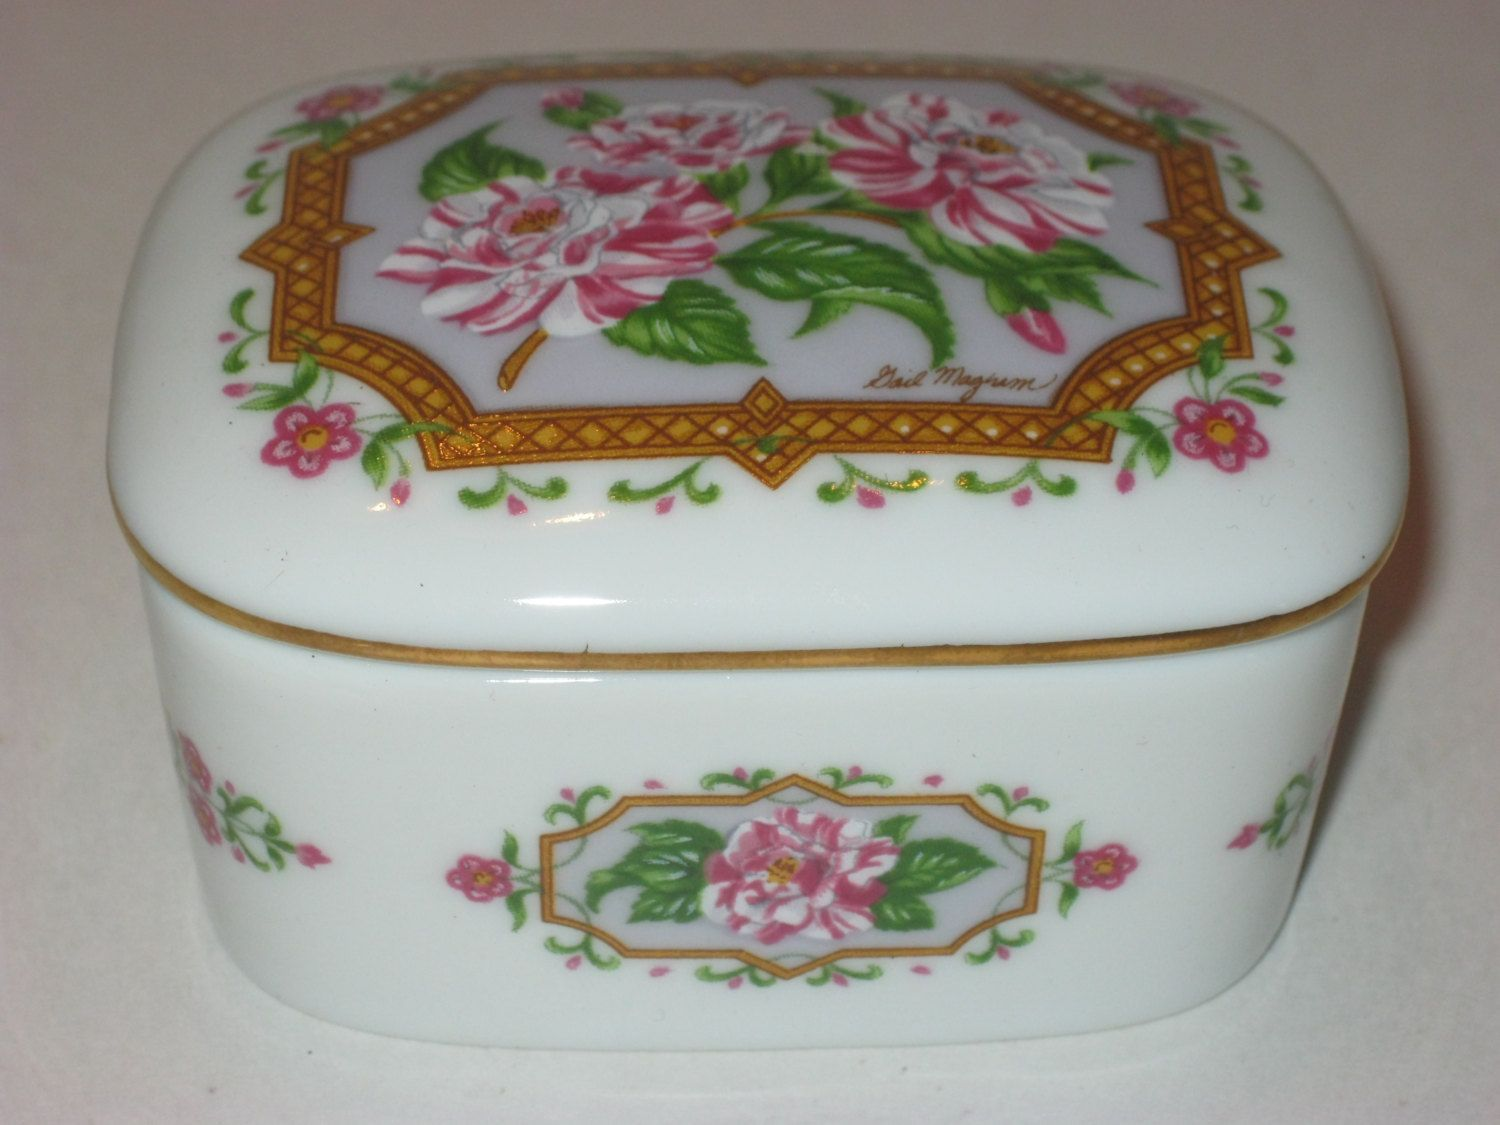 Porcelain Floral Music Box Heritage House Trinket Box Love Etsy Trinket Boxes Music Box Heritage House